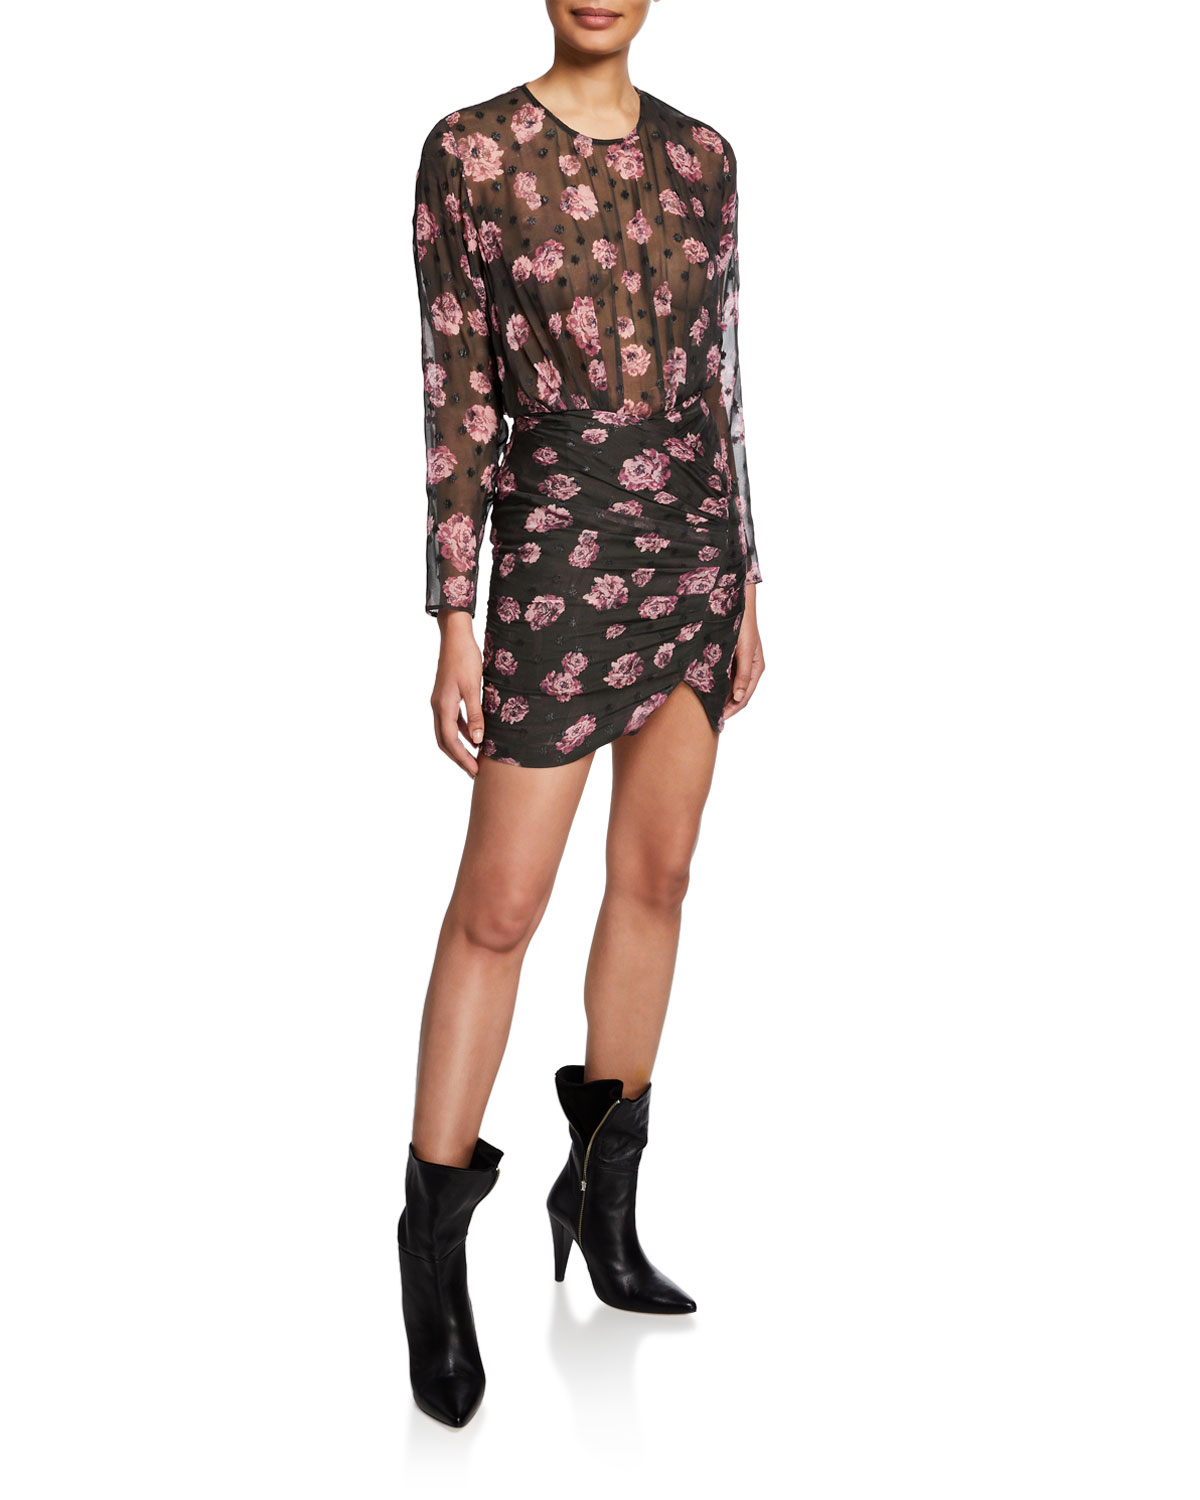 Iro Adelino Dotted Floral Long-Sleeve Mini Dress